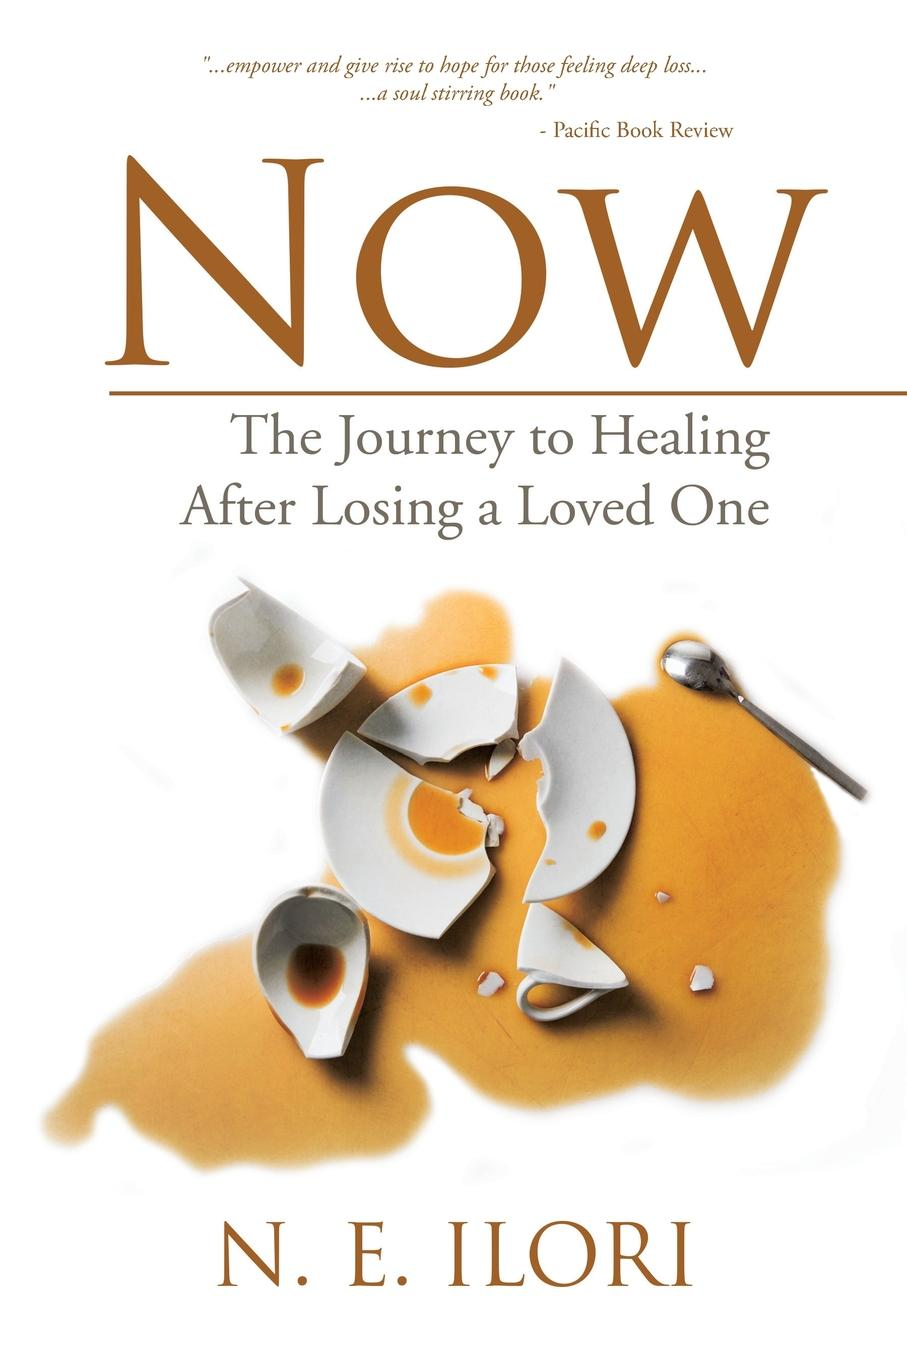 Nkechi E. Ilori Now. The Journey to Healing After Losing a Loved One larry f wolf policing peace what america can do now to avoid future tragedies